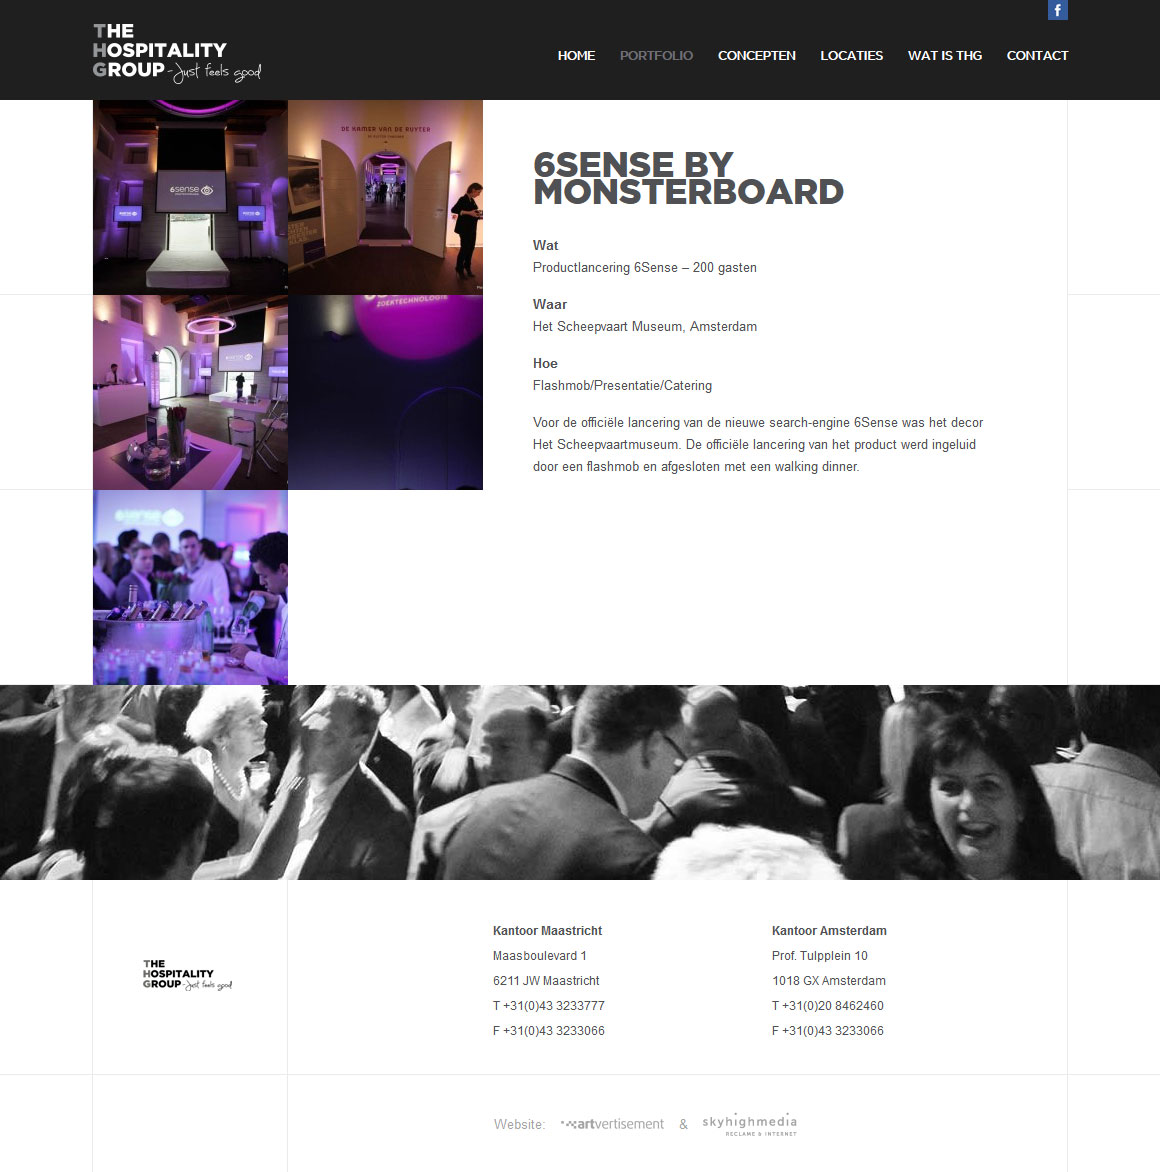 thehospitalitygroup_website2